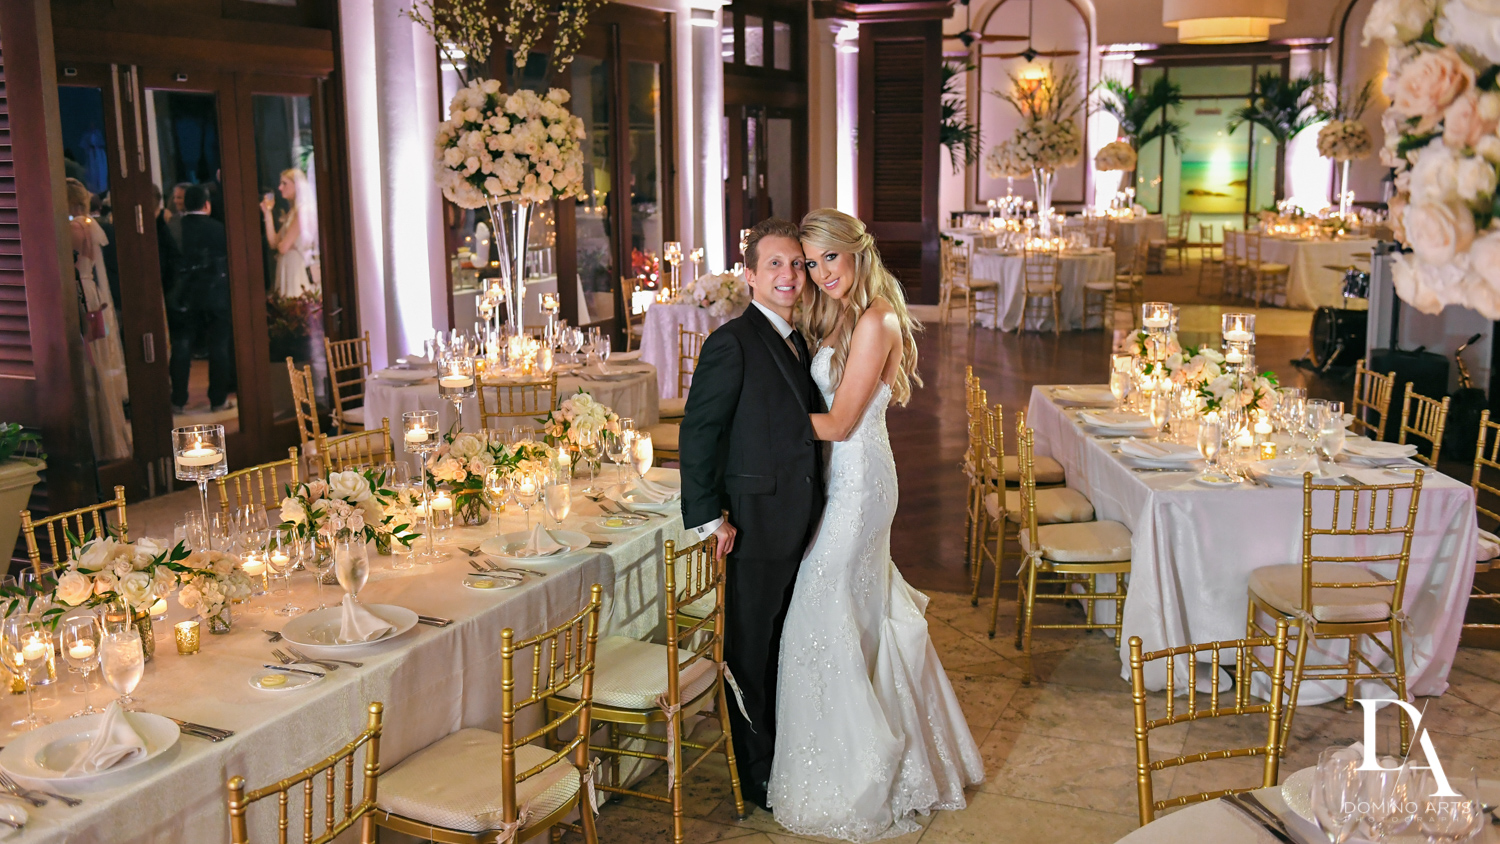 wedding decor at Extravagant Wedding at The Breakers Palm Beach by Domino Arts Photography